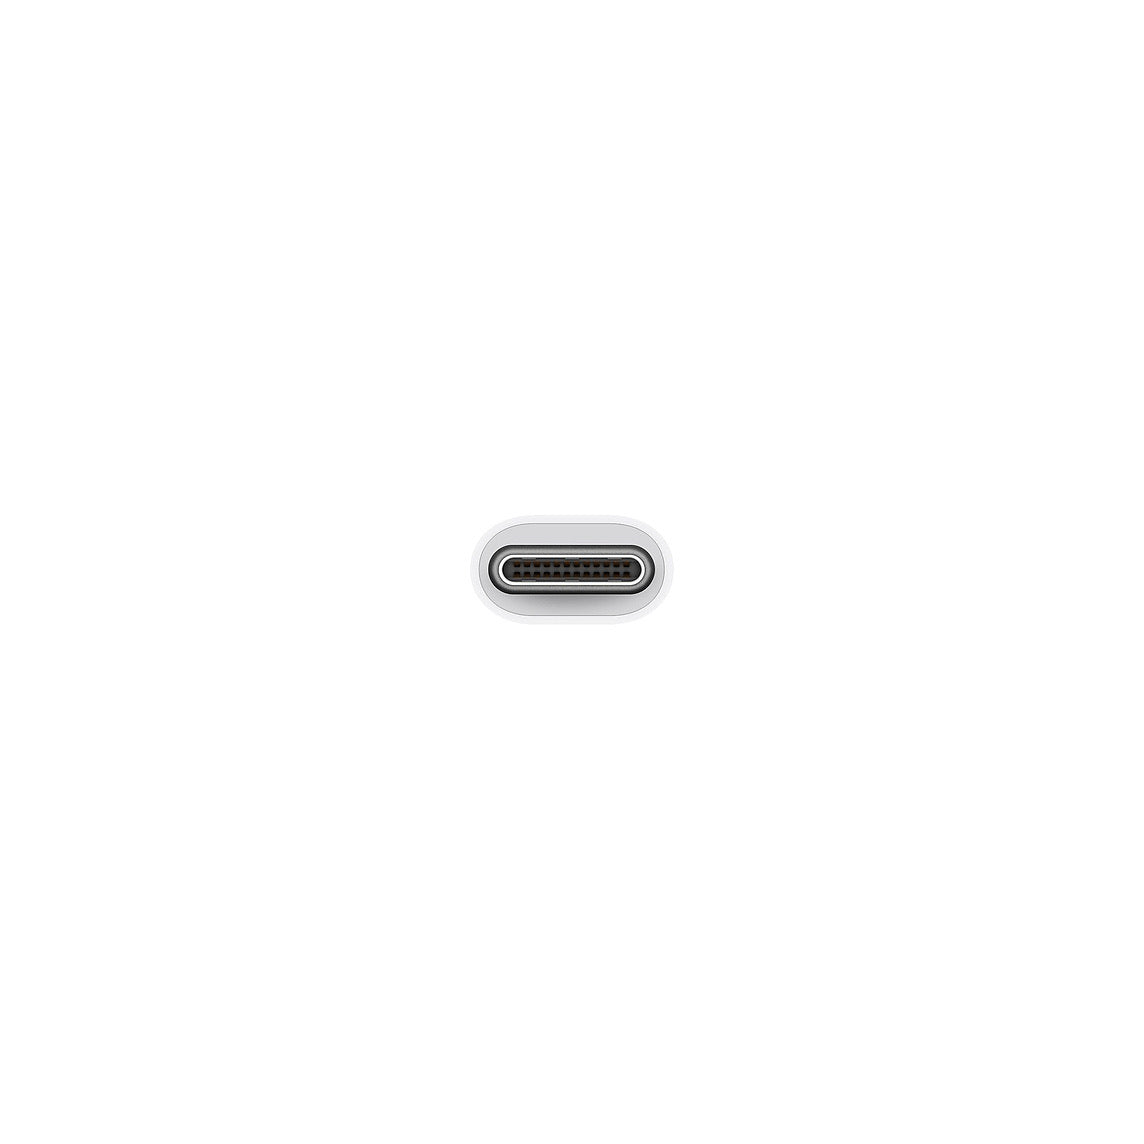 Apple USB-C to USB Adapter